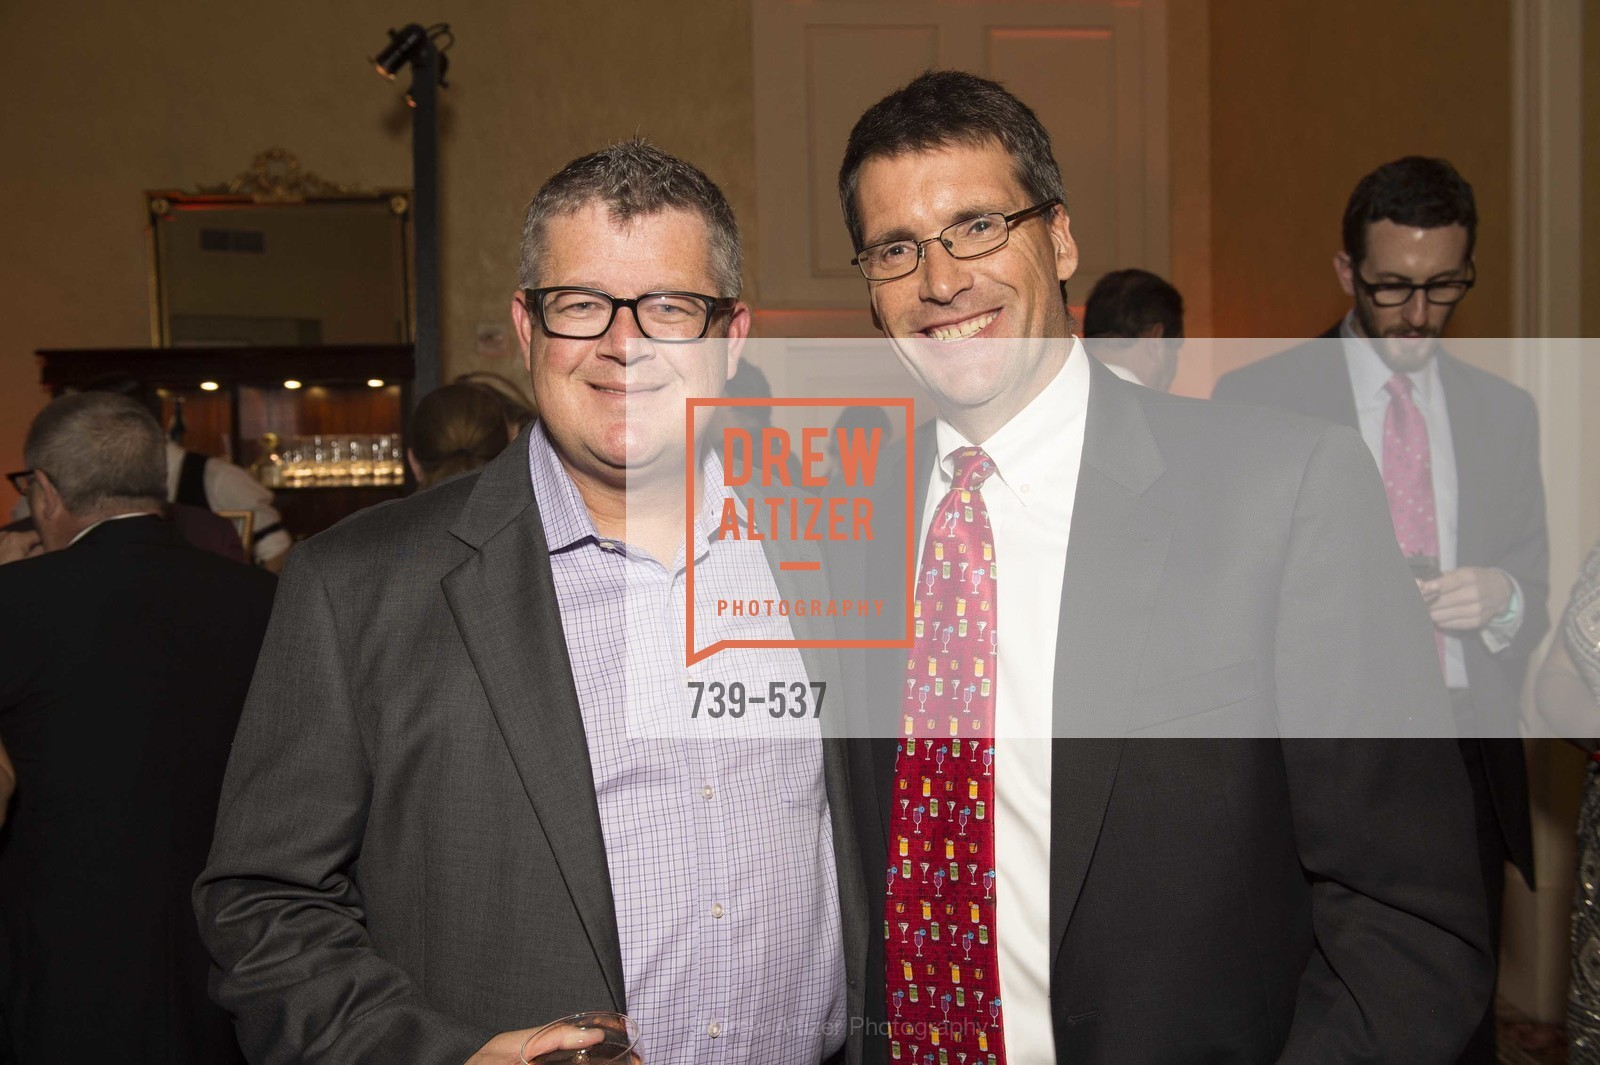 Charlie Conrad, Paul Brady, TOP OF THE MARK'S 75TH Anniversary Party, US, November 7th, 2014,Drew Altizer, Drew Altizer Photography, full-service agency, private events, San Francisco photographer, photographer california